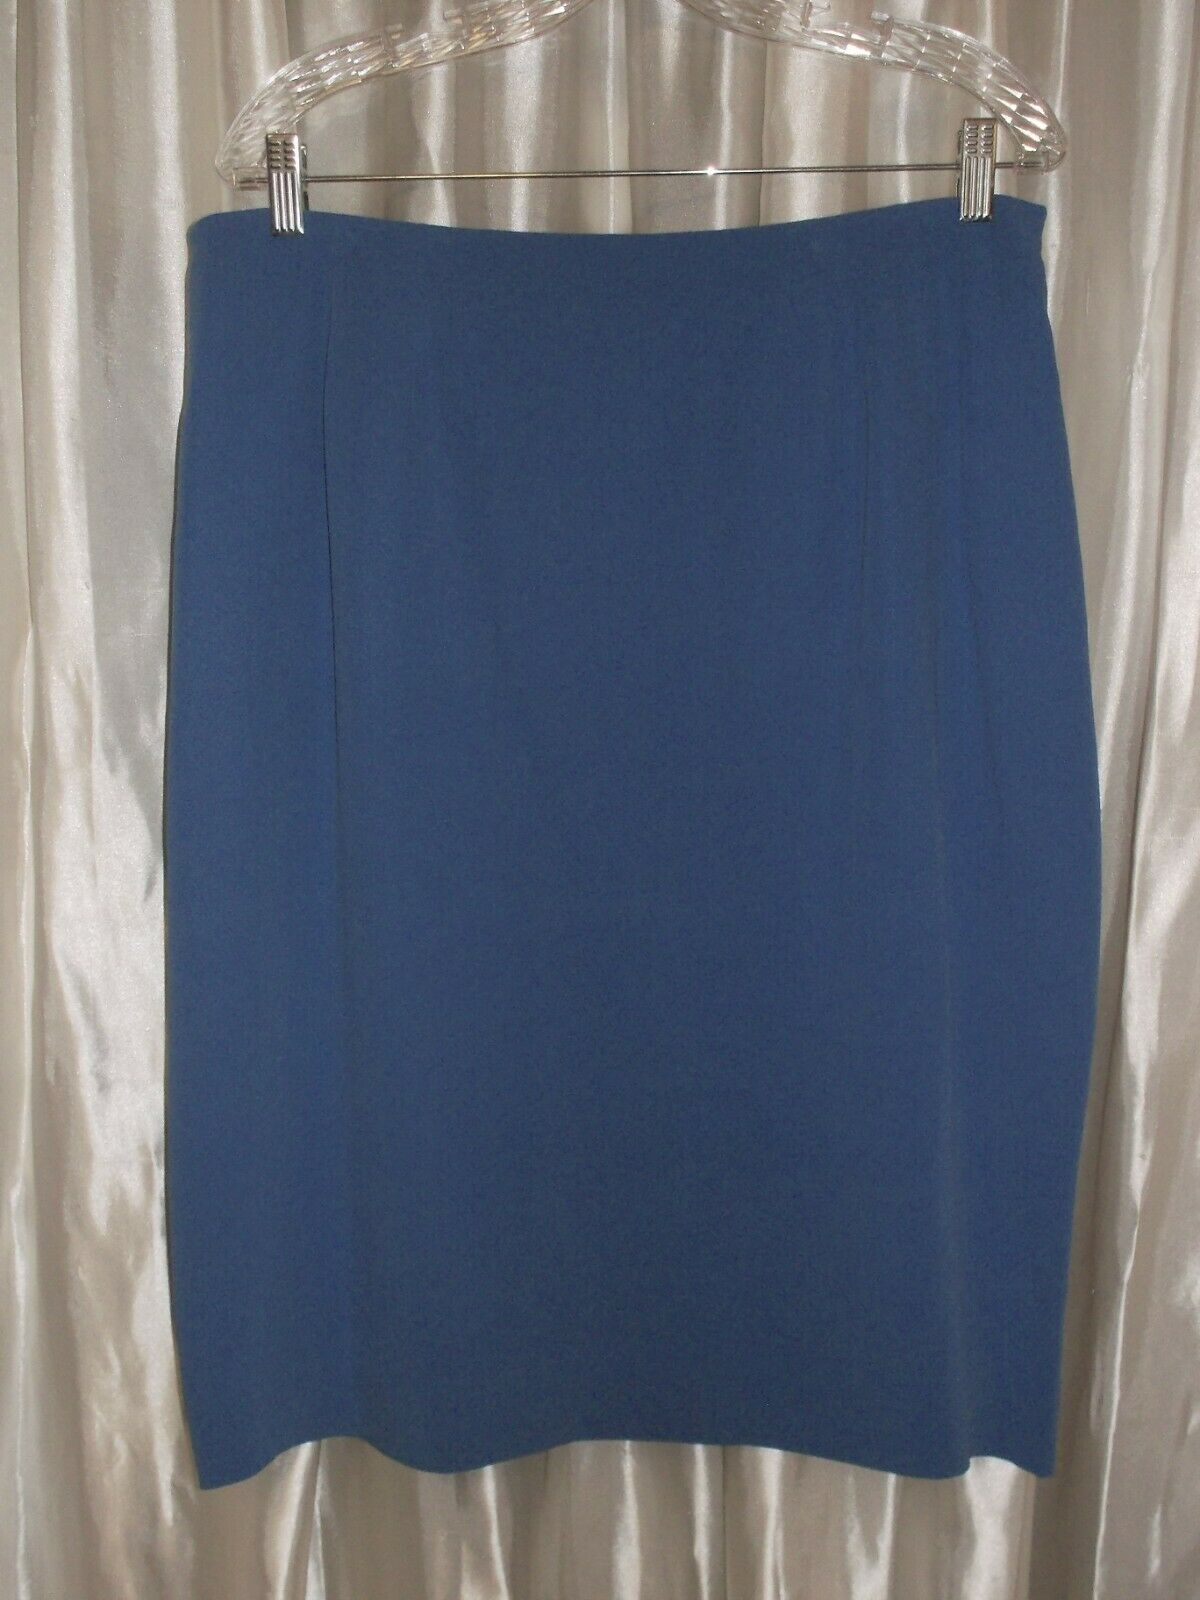 New with tag MSRP bluee silk skirt, lined, 26